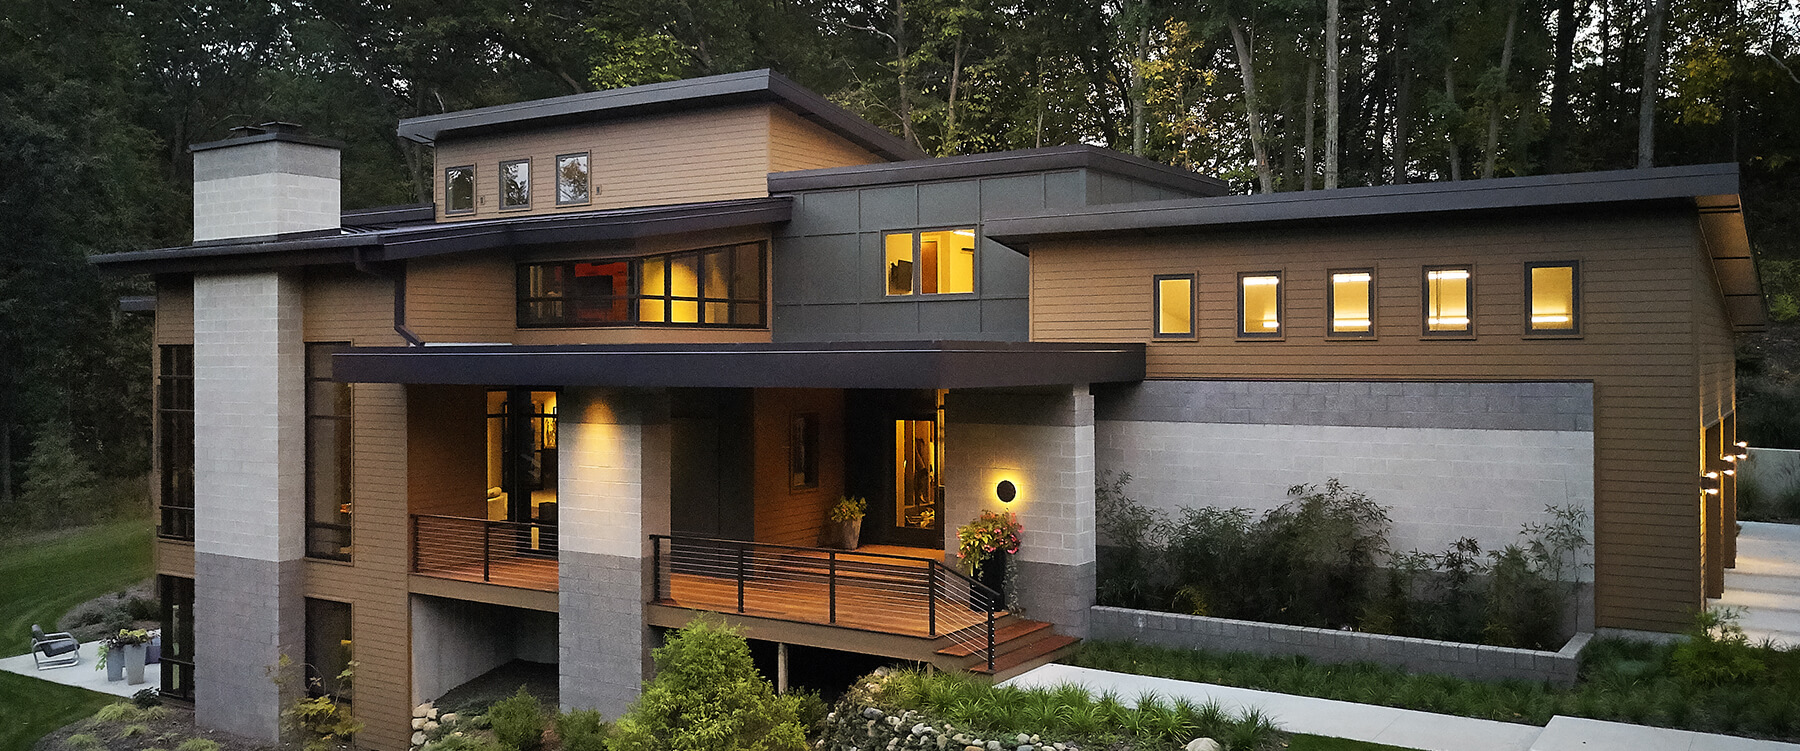 Modern home in the woods exterior view